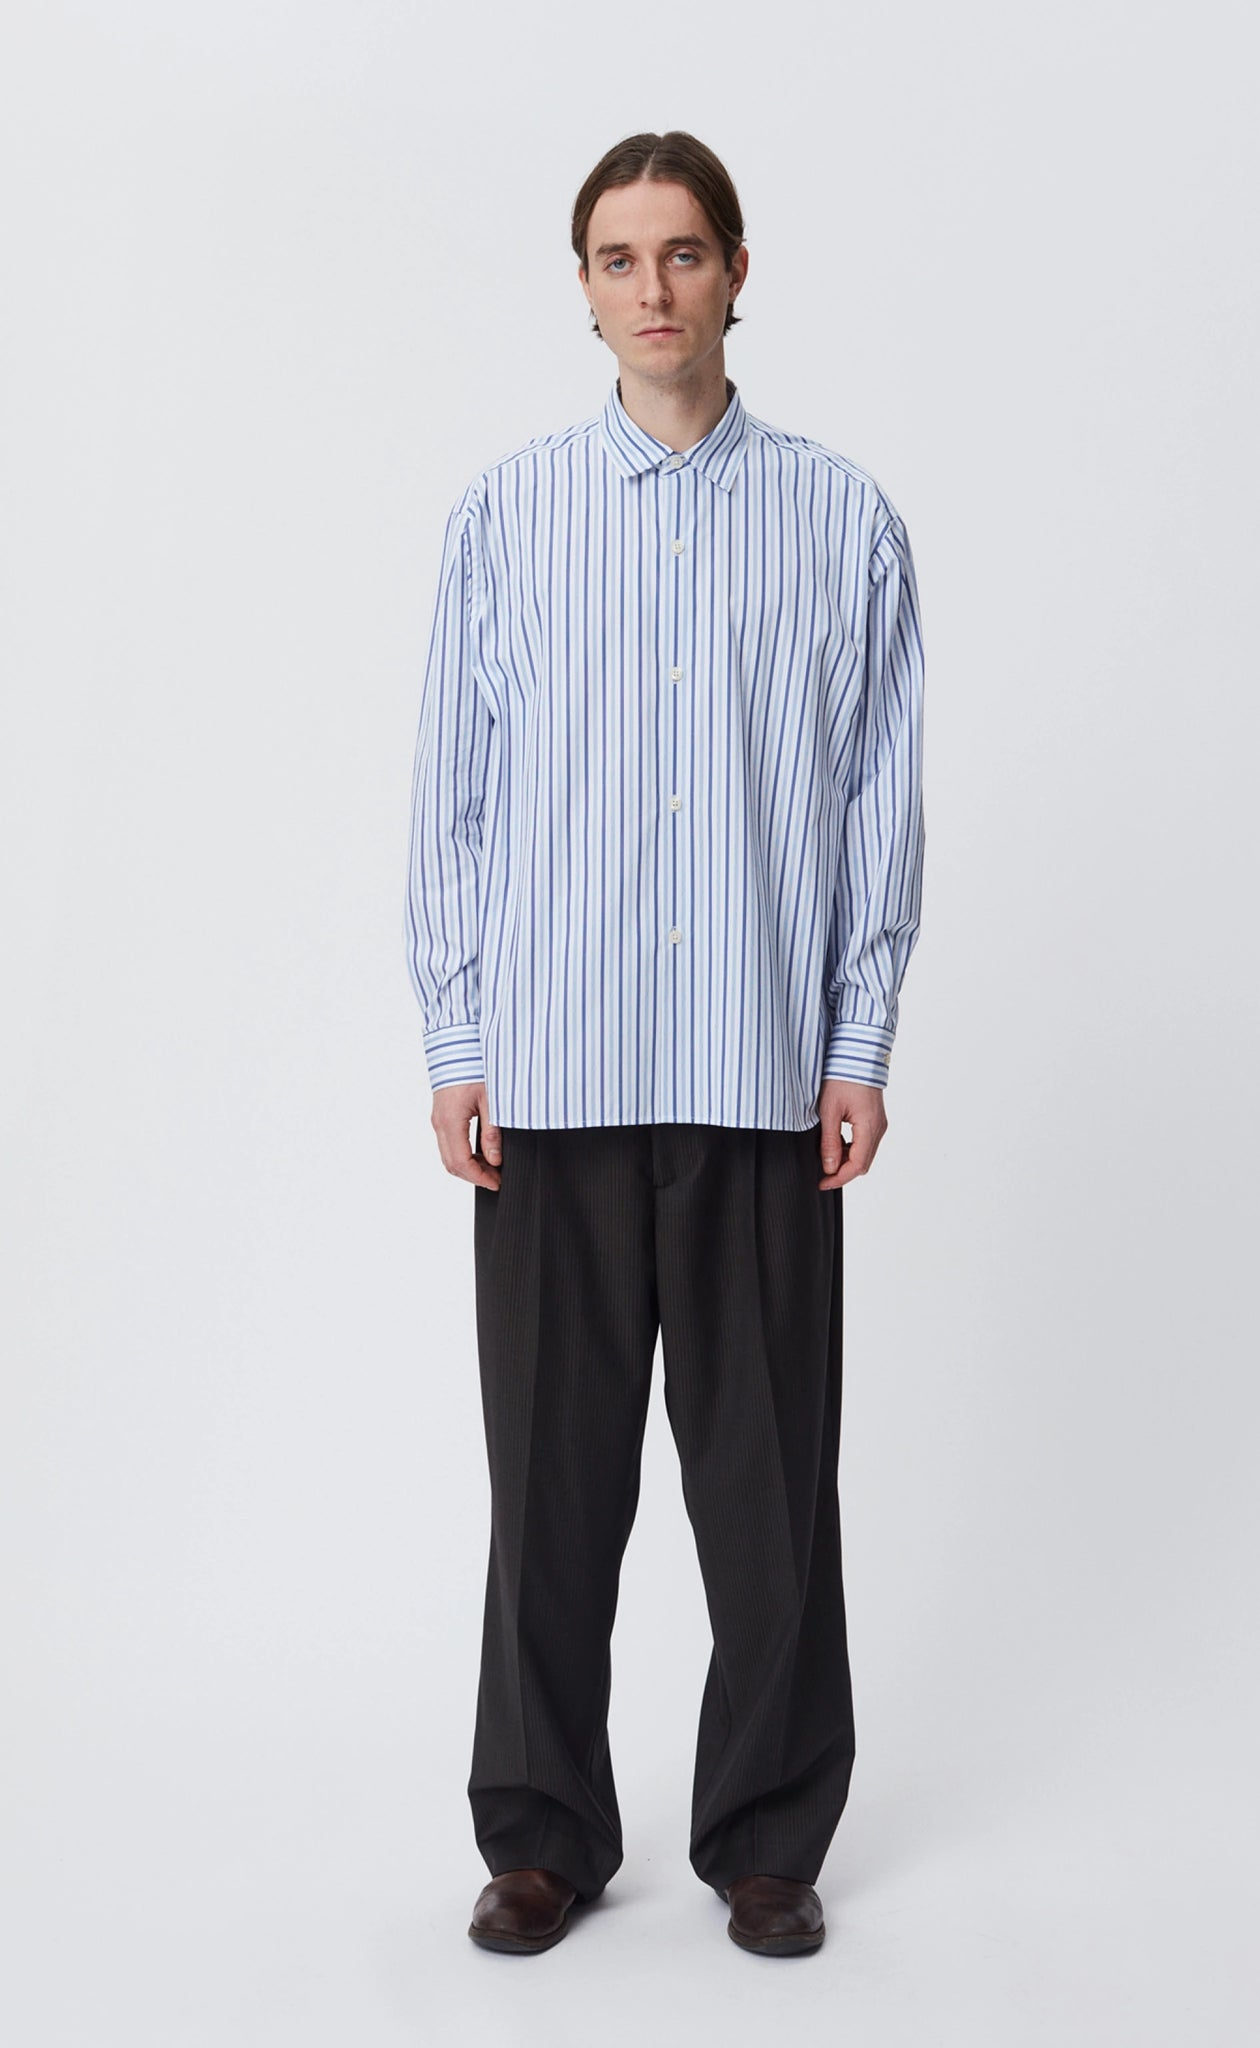 Generous shirt yuppie stripe